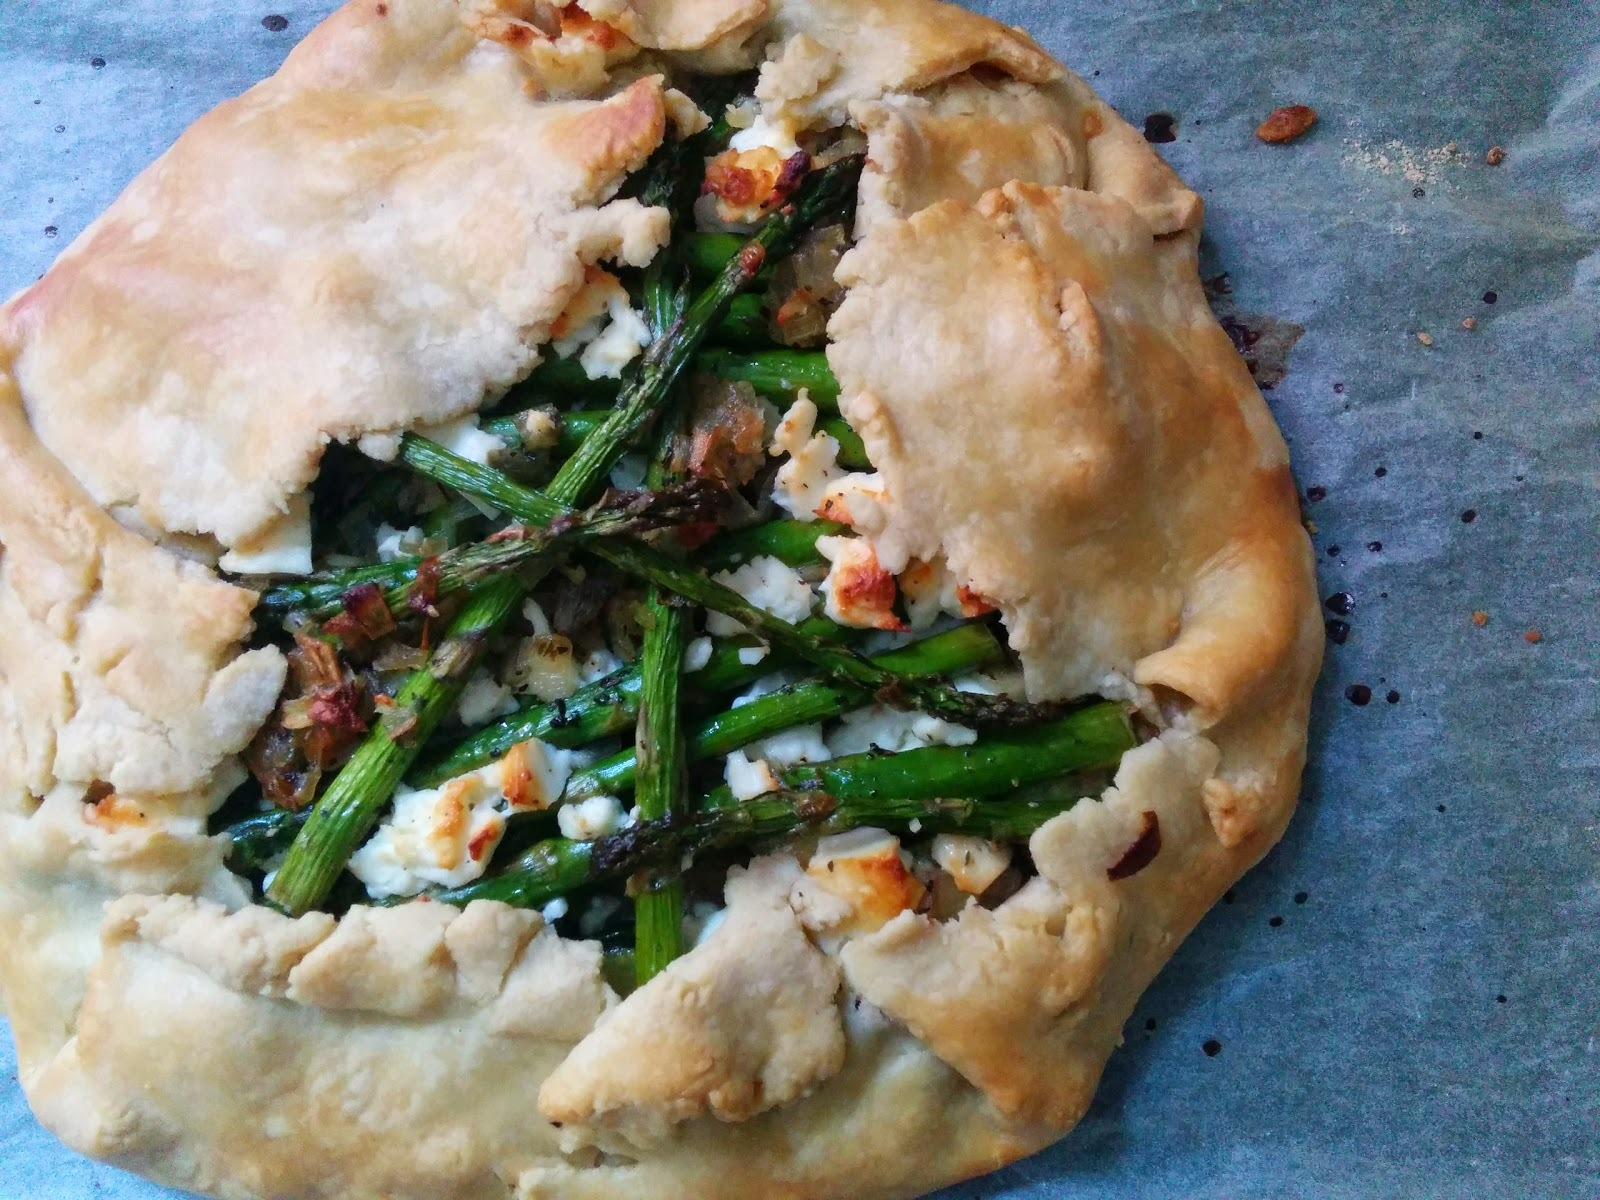 Courgette (Zucchini), Asparagus and Feta Cheese Galette